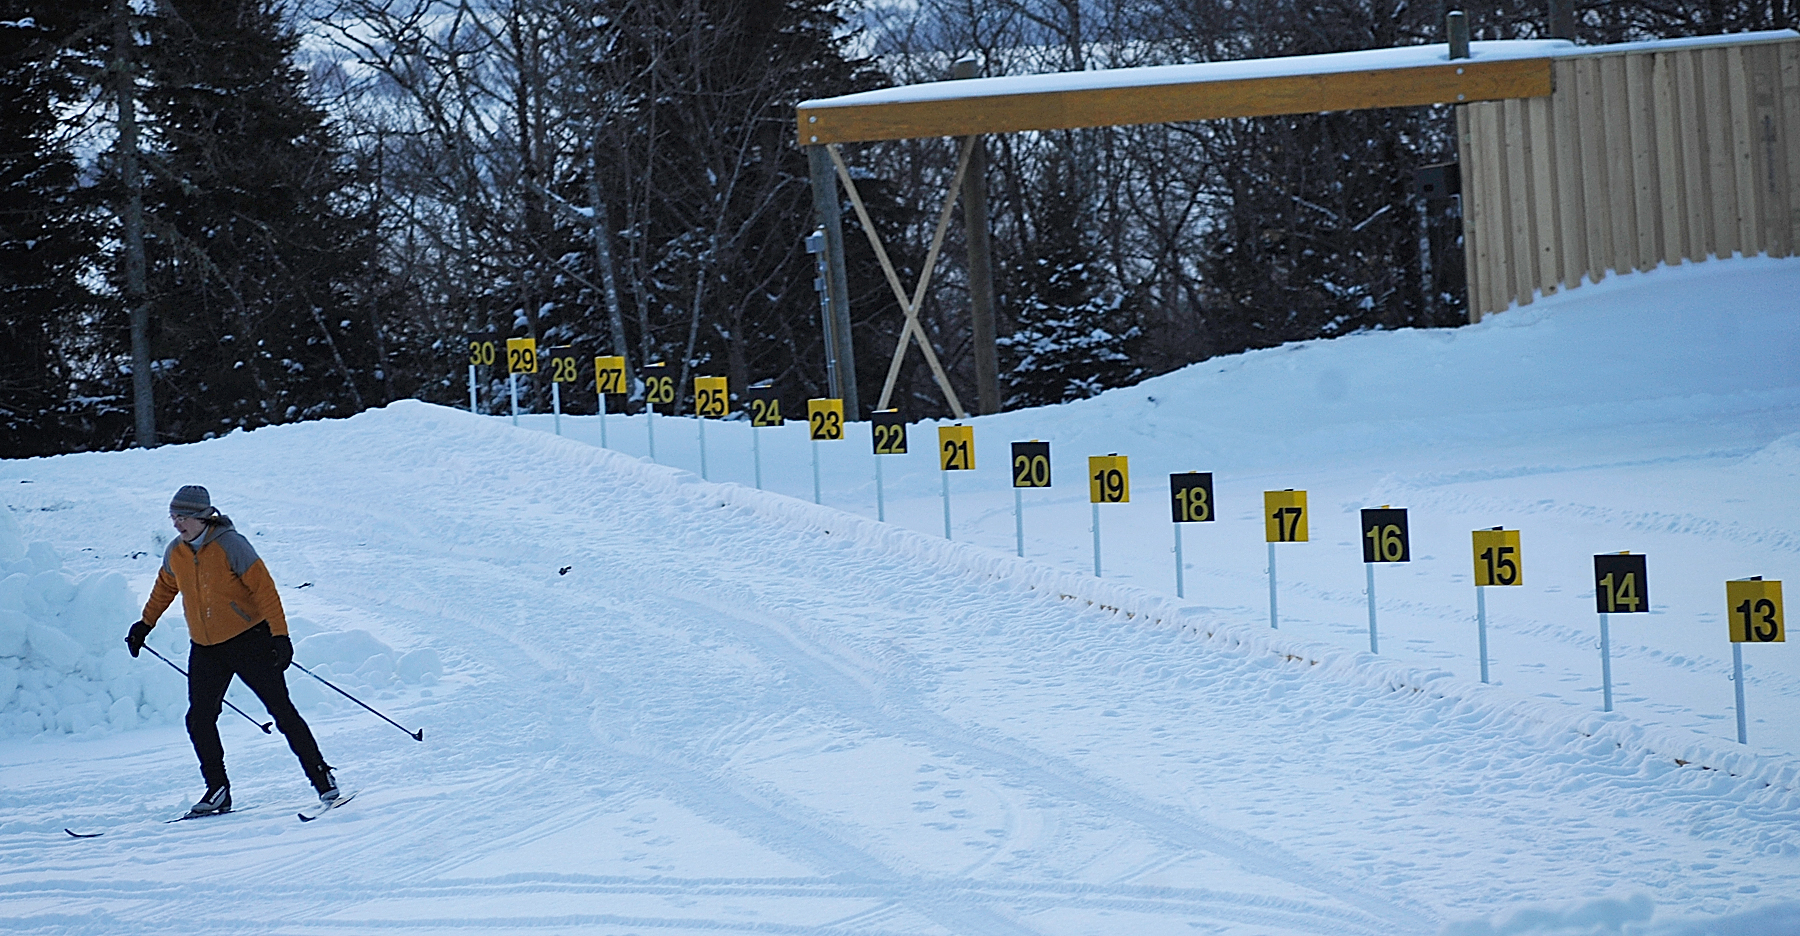 Biathlon volunteer Michelle Anderson of Presque Isle gets in a few laps in the soon-to-be-groomed penalty lap area and shooting range at the Nordic Heritage Center  in Presque Isle just before sunset Wednesday, Jan. 26, 2011. The World Cup Biathlon tour is coming to Presque Isle February 4-6 and to Fort Kent February 10-13 and area businesses, many of which are working and volunteering at both venues, expect to benefit.